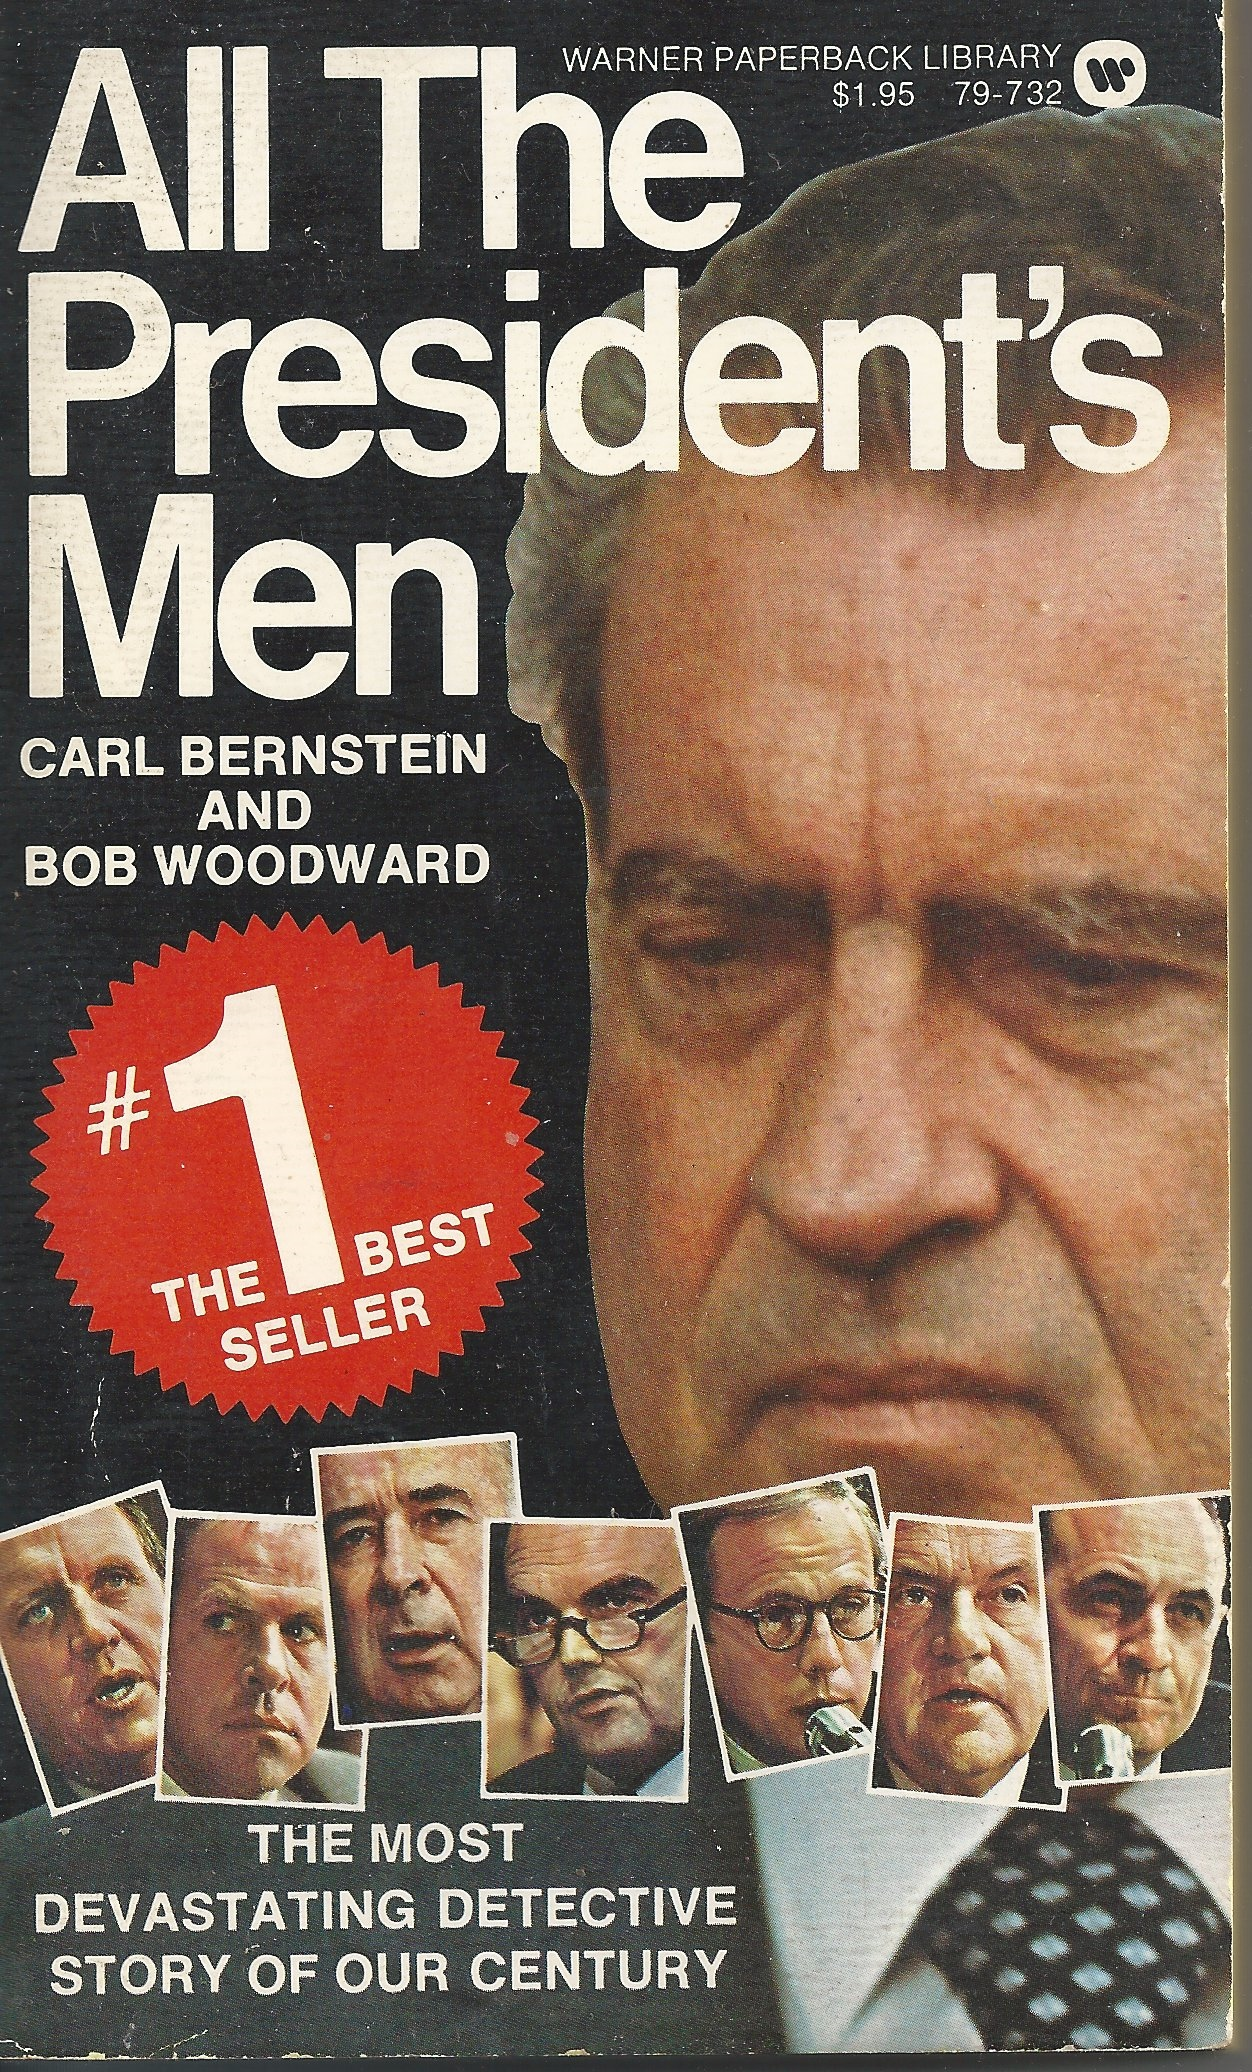 an analysis of the book all the presidents men by carl bernstein and bob woodward Bob woodward and carl bernstein books, all the president's men and the final days, and in the multiple academy award-winning movie of all the president's men.